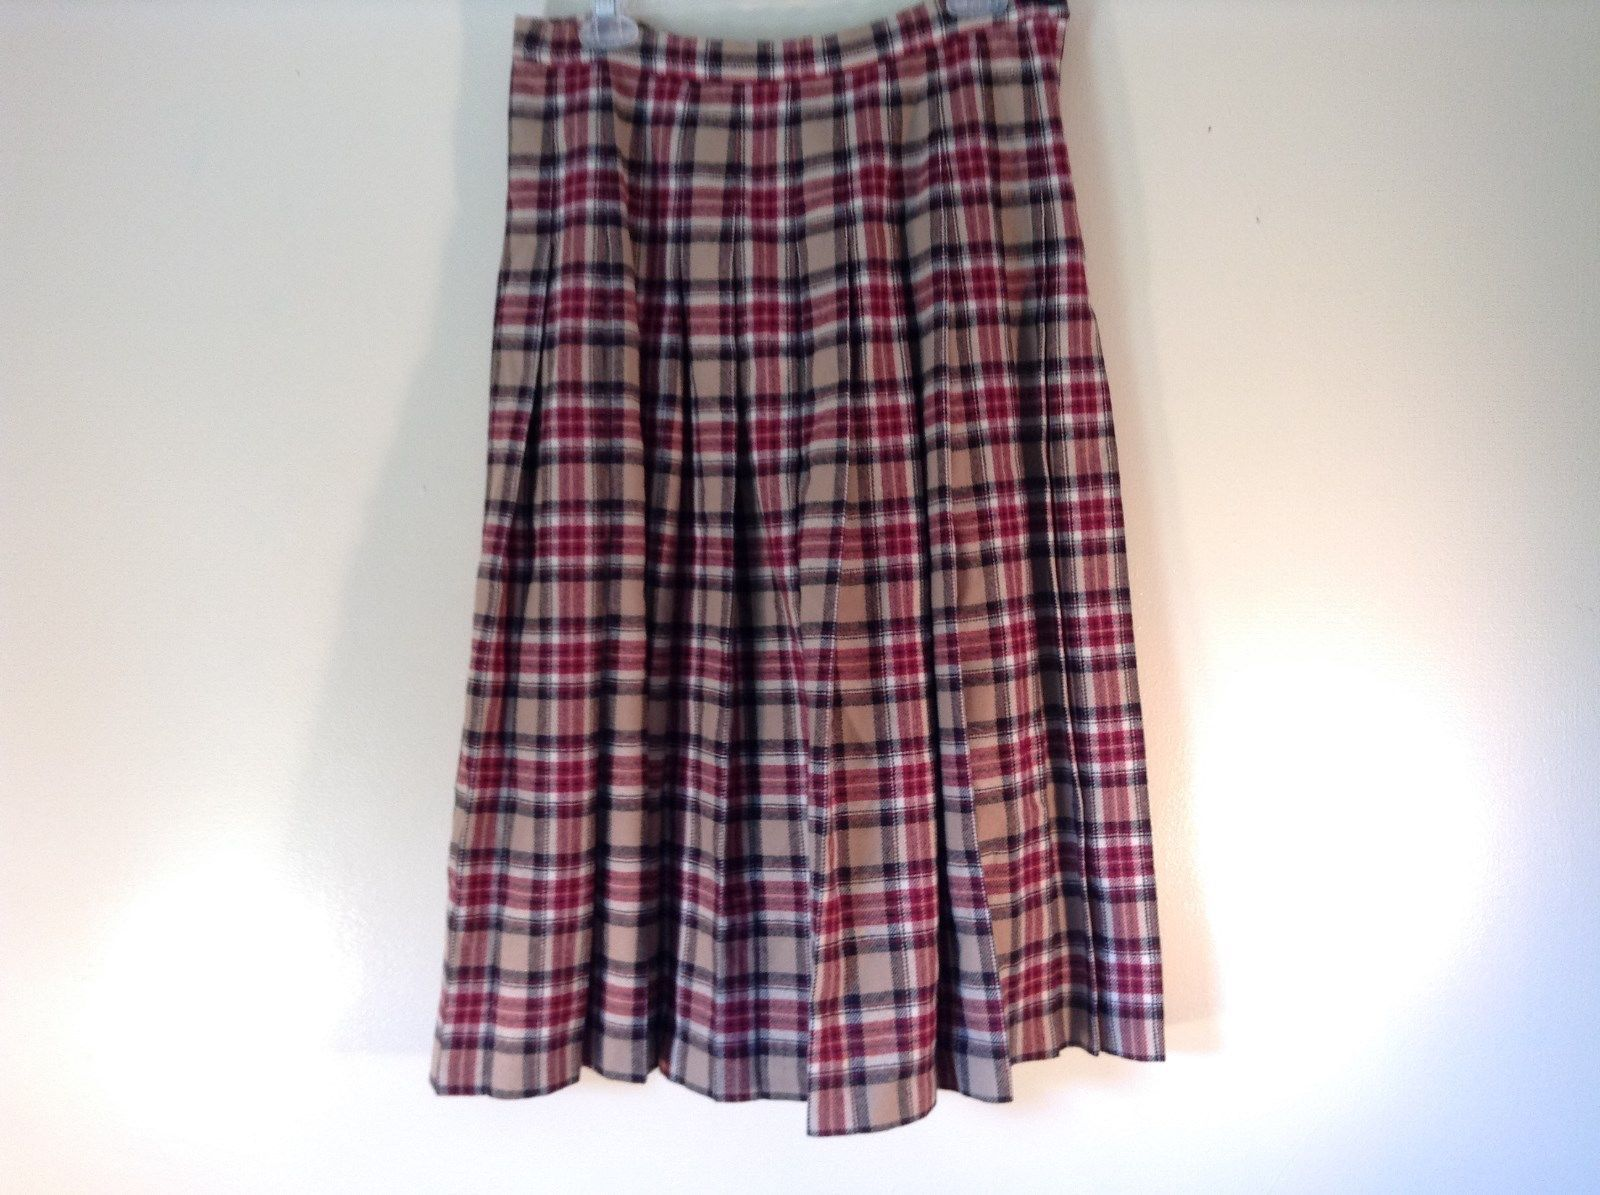 Pendleton Pure Virgin Wool Pleated Plaid Skirt Burgundy Beige Made In USA